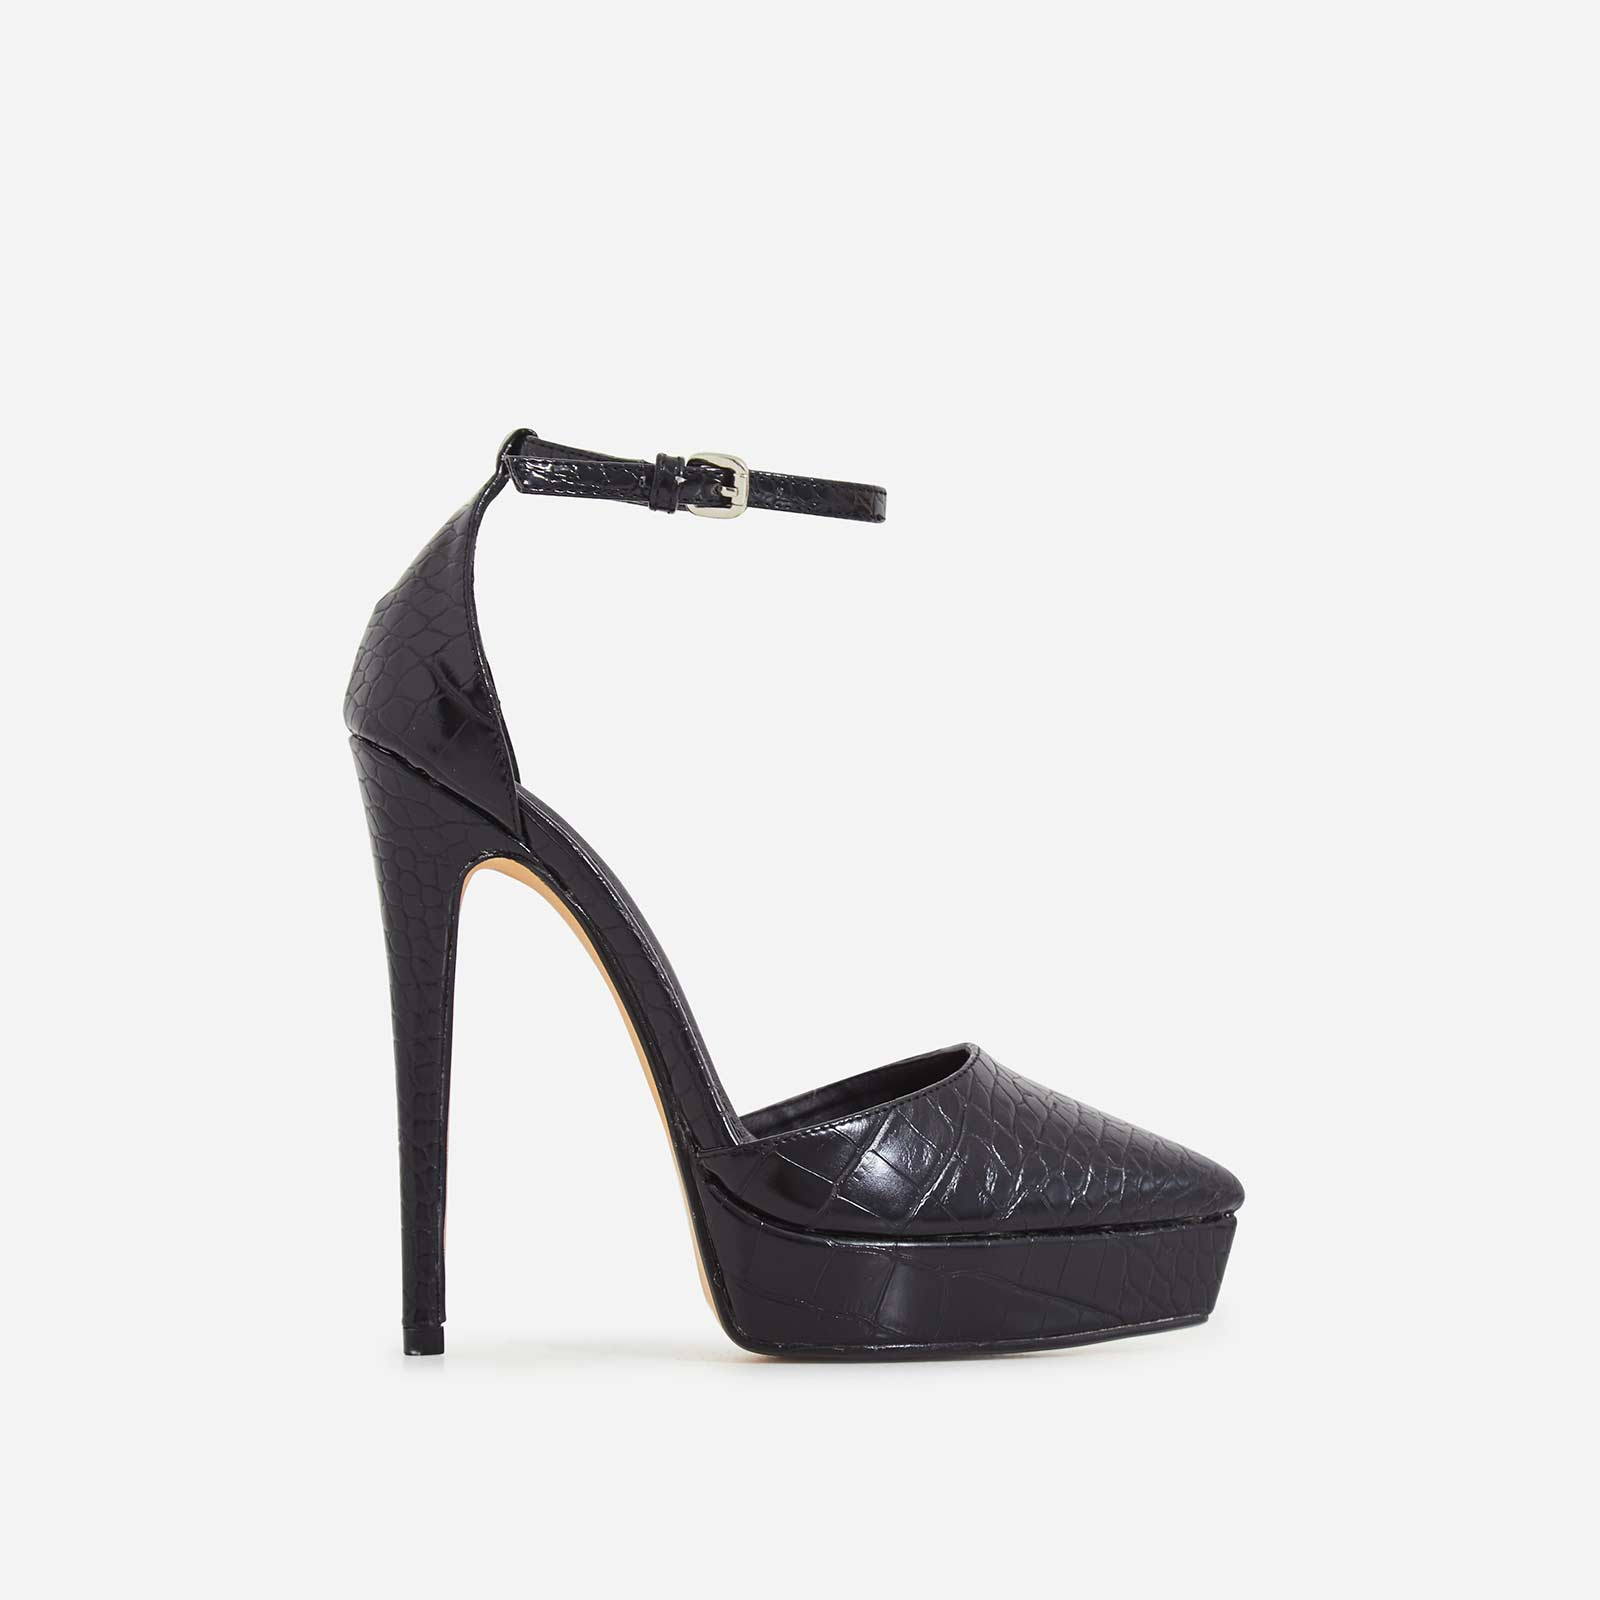 Pleasure Platform Pointed Toe Heel In Black Croc Print Faux Leather